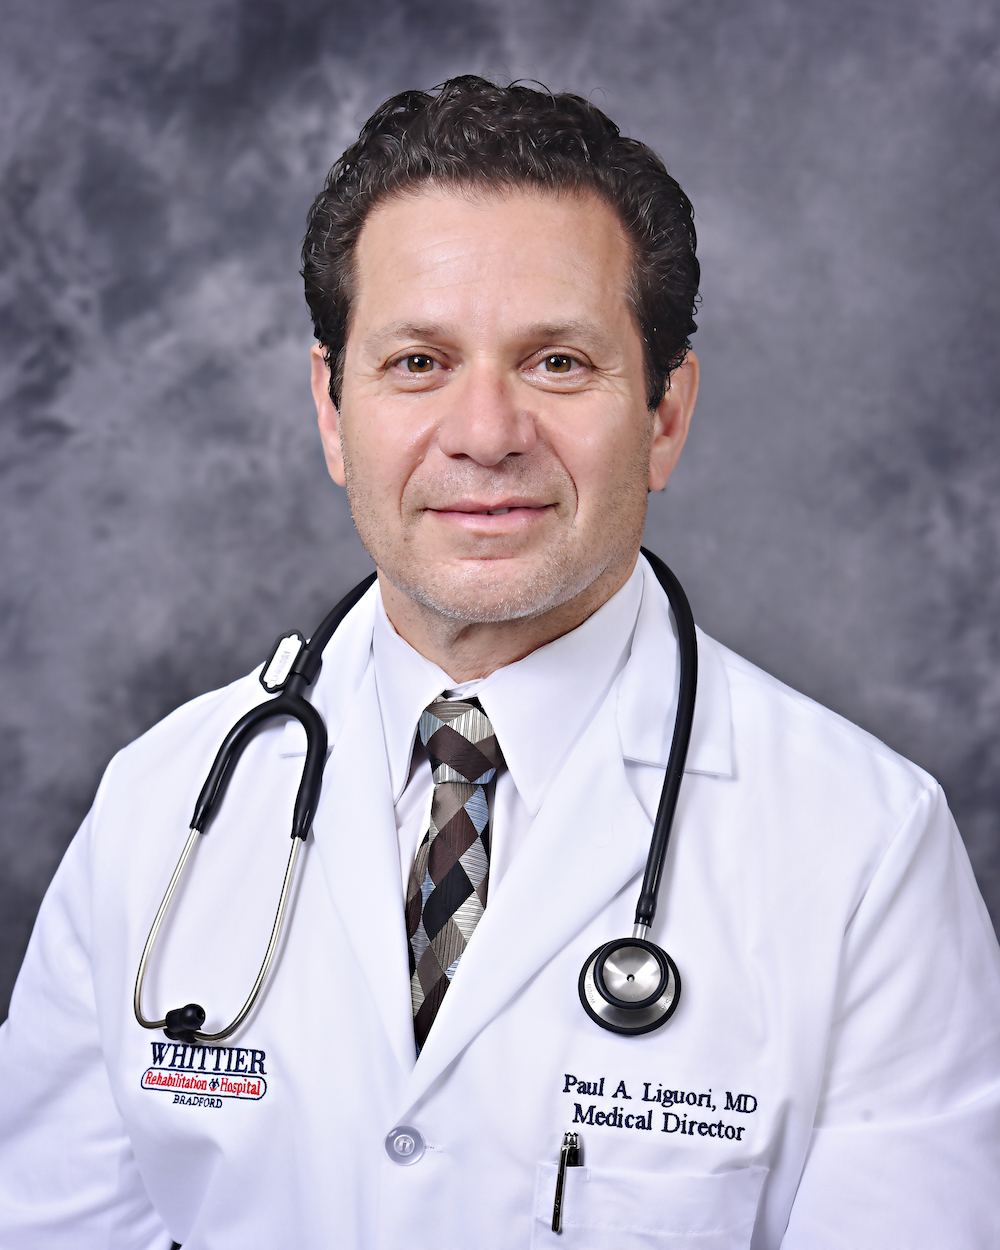 Dr. Paul Liguori, MD, MRM, Medical Director